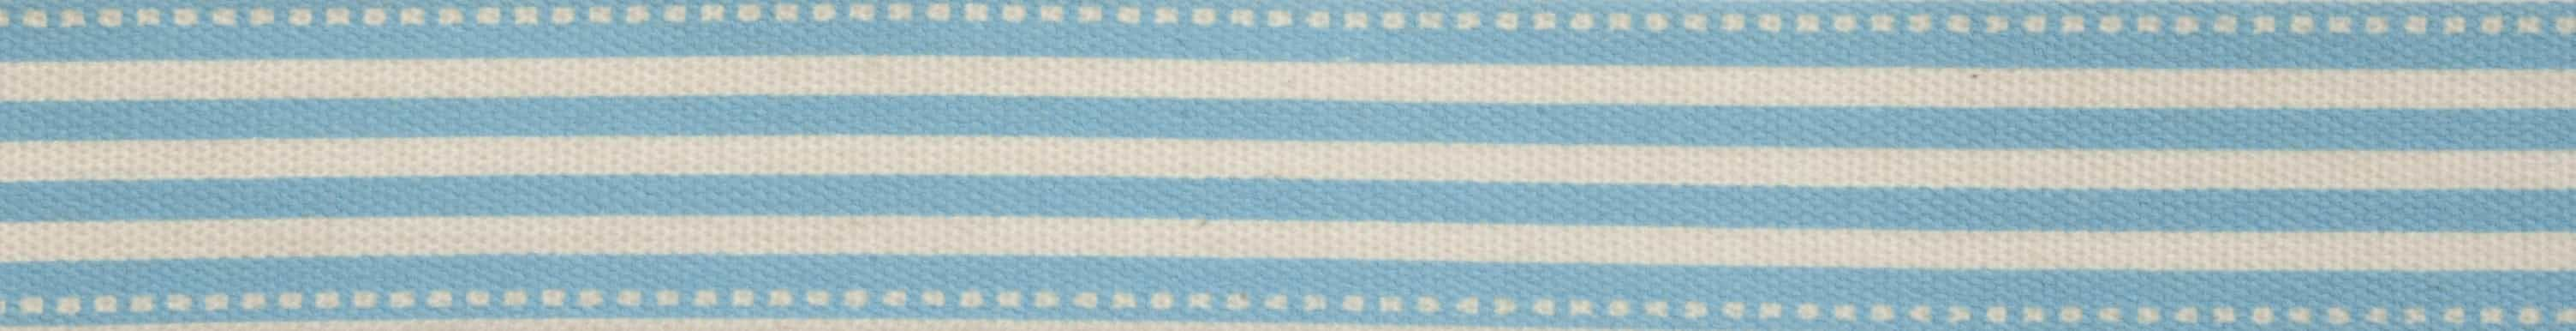 15mm Blue Striped Cotton Ribbon 5m Reel